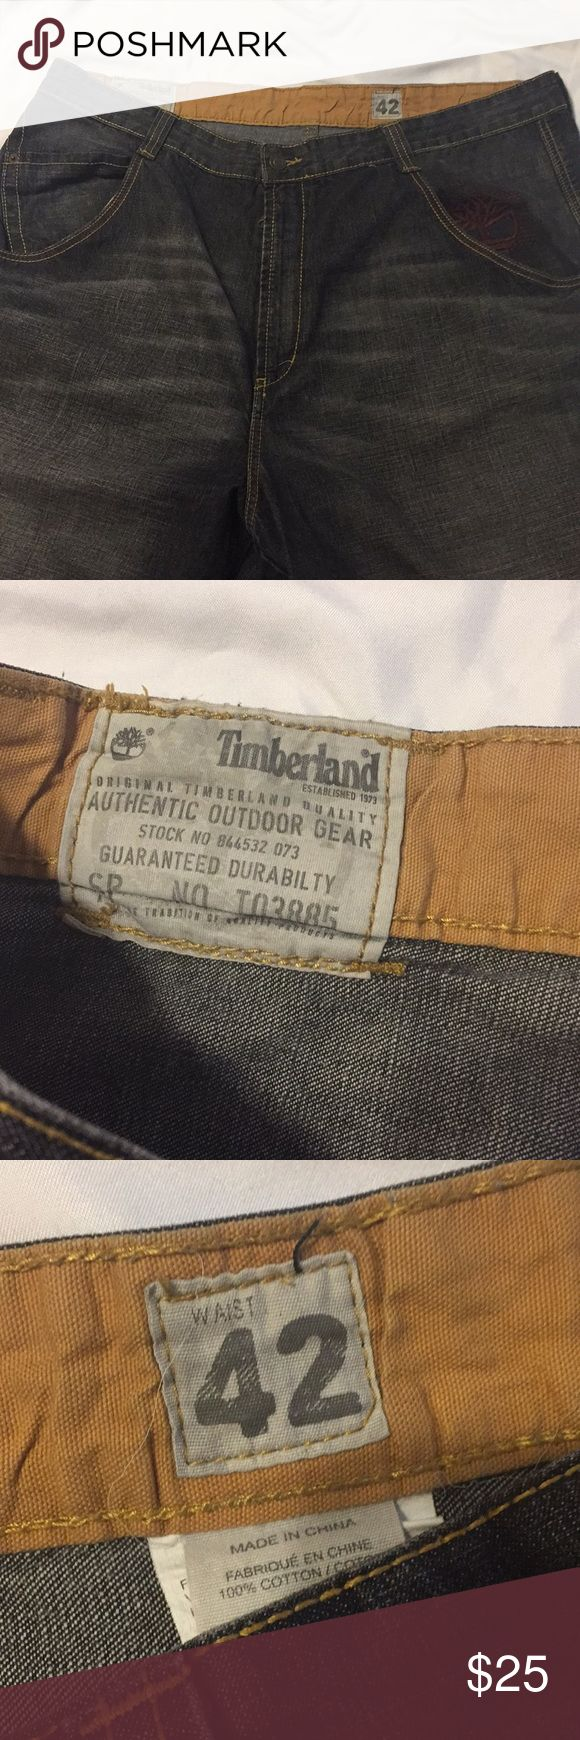 """Men's Timberland jeans dark grey wash size 42 Men's Timberland jeans dark grey wash size 42- inseam 32"""". Great condition. Very small amount of fray on cuffs, shown in pics. Timberland Jeans Relaxed"""